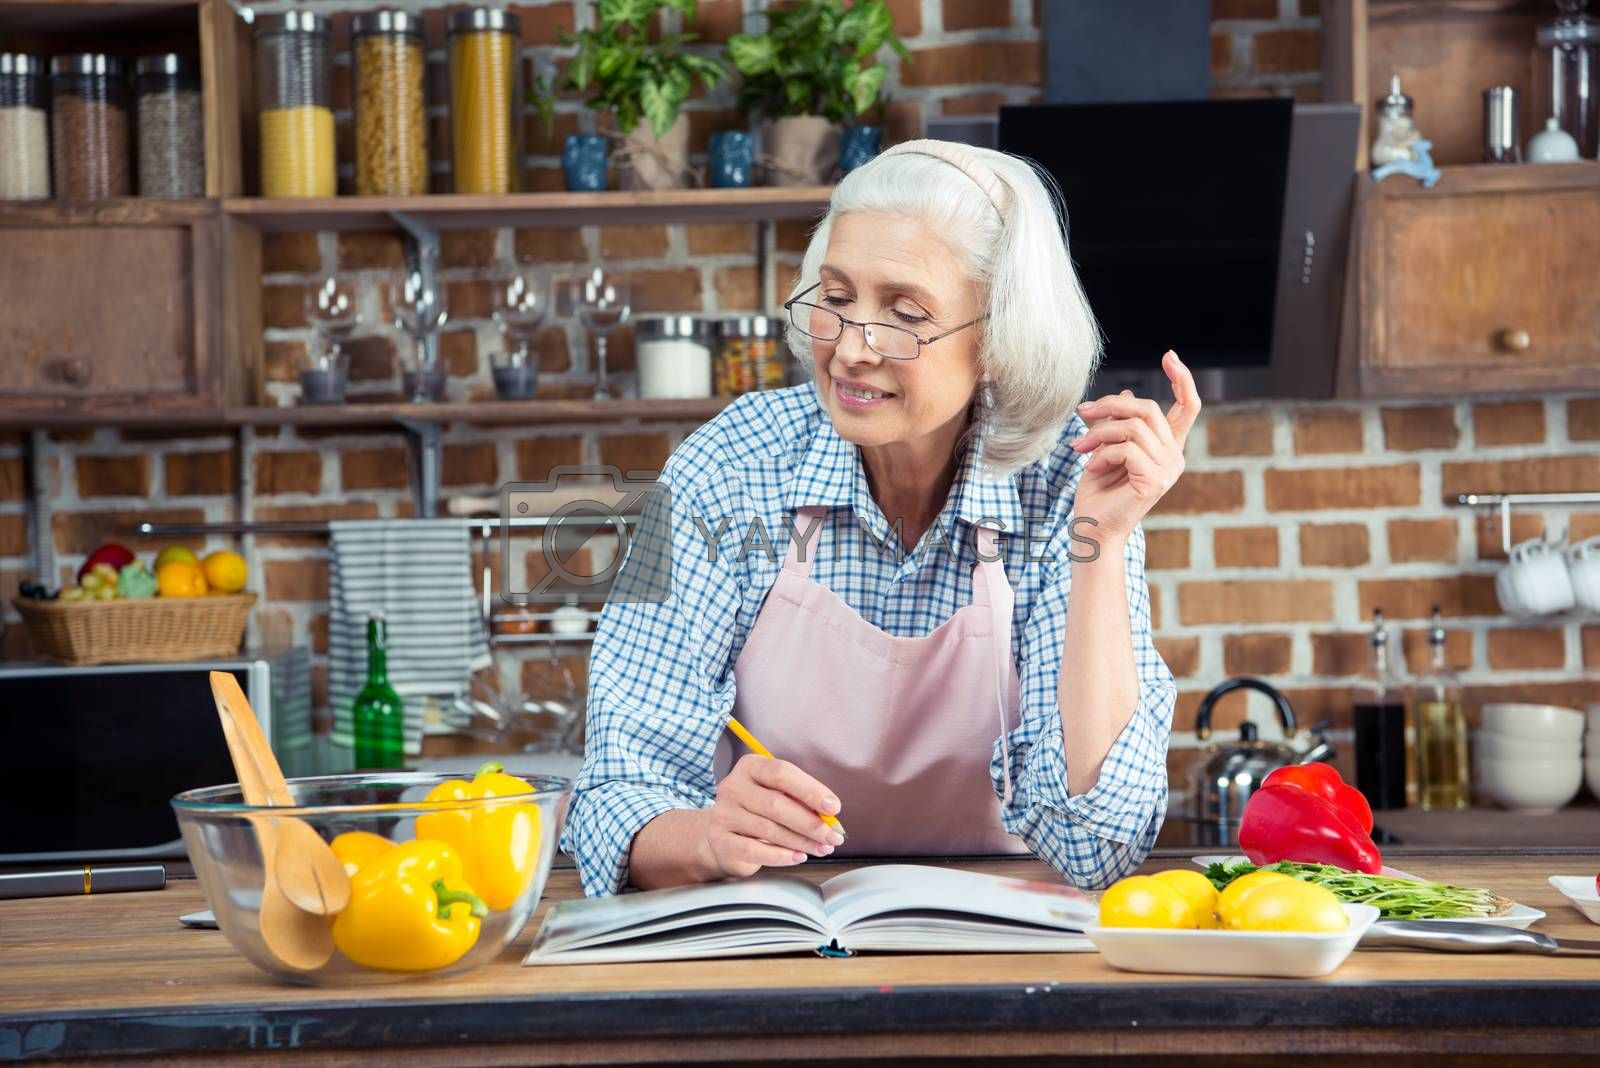 Smiling senior woman writing in cookbook with pencil and looking at ingredients